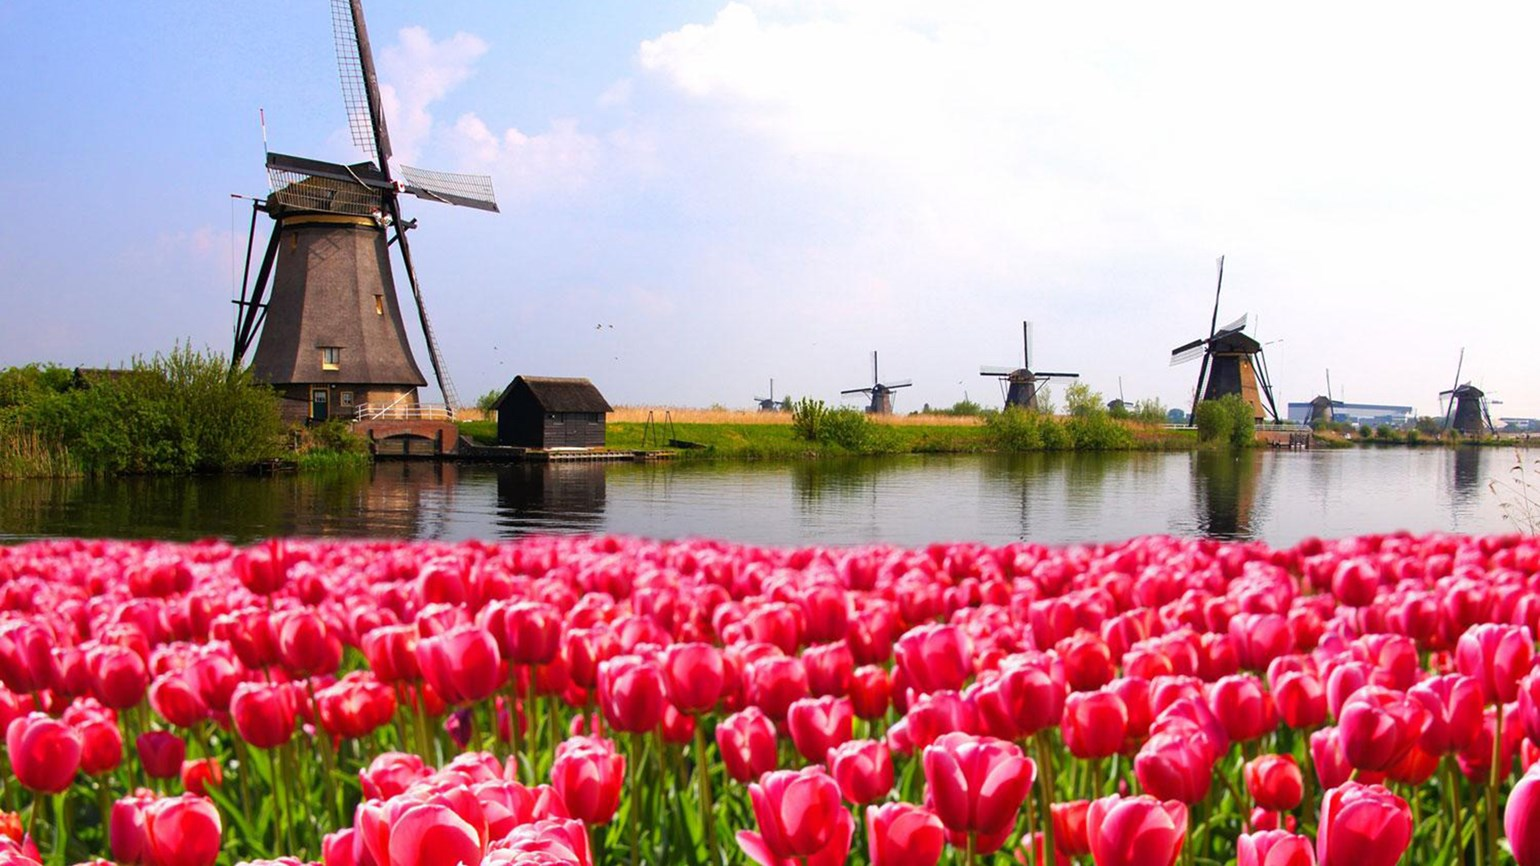 Netherlands barge cruise, $1,200